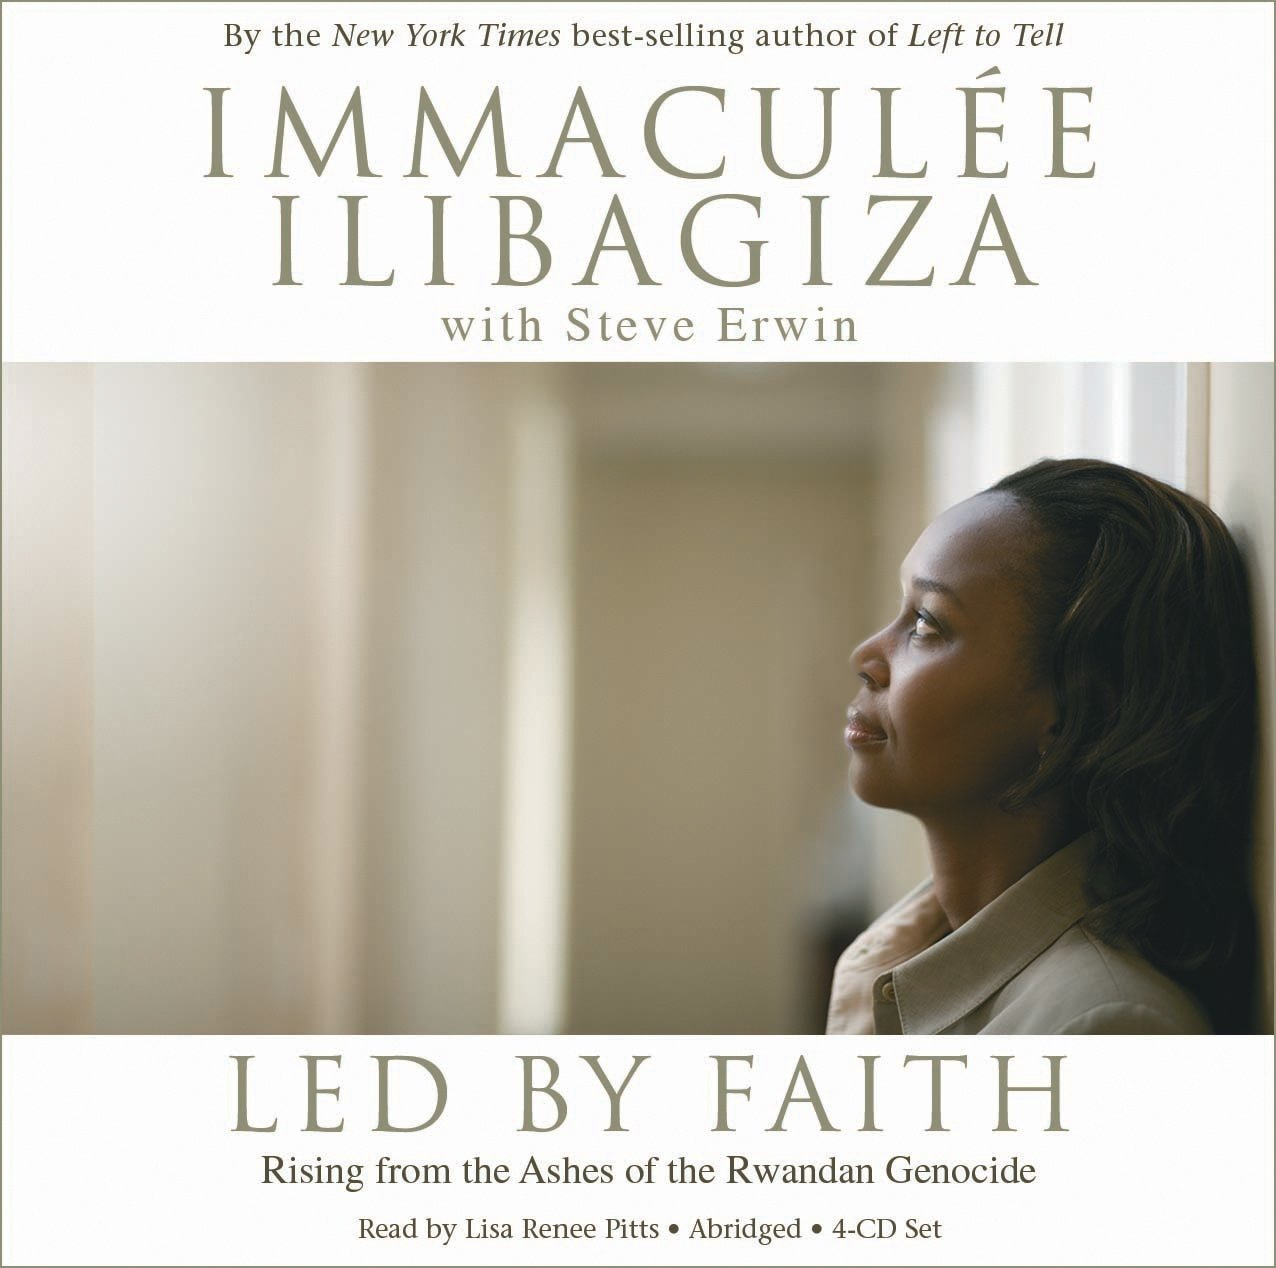 Led by Faith 4-CD set: Rising from the Ashes of the Rwandan Genocide